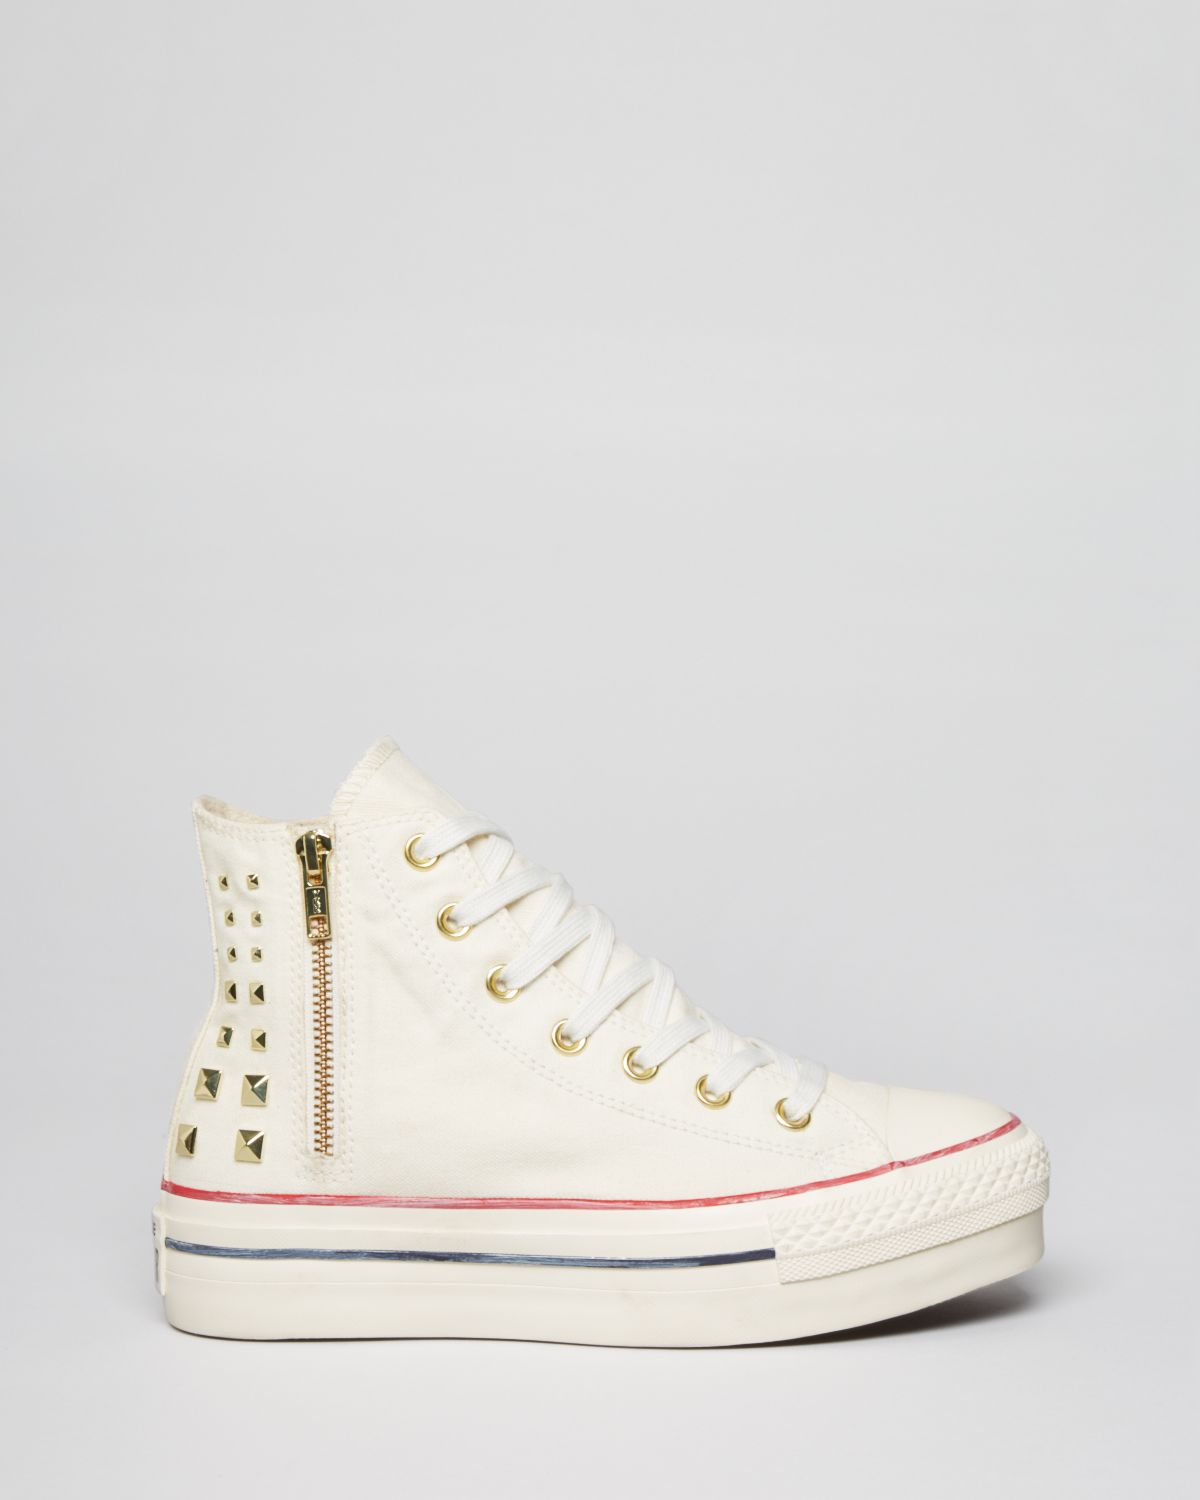 e79296bff776 Converse Lace Up High Top Platform Sneakers All Star Collar Studs in ...